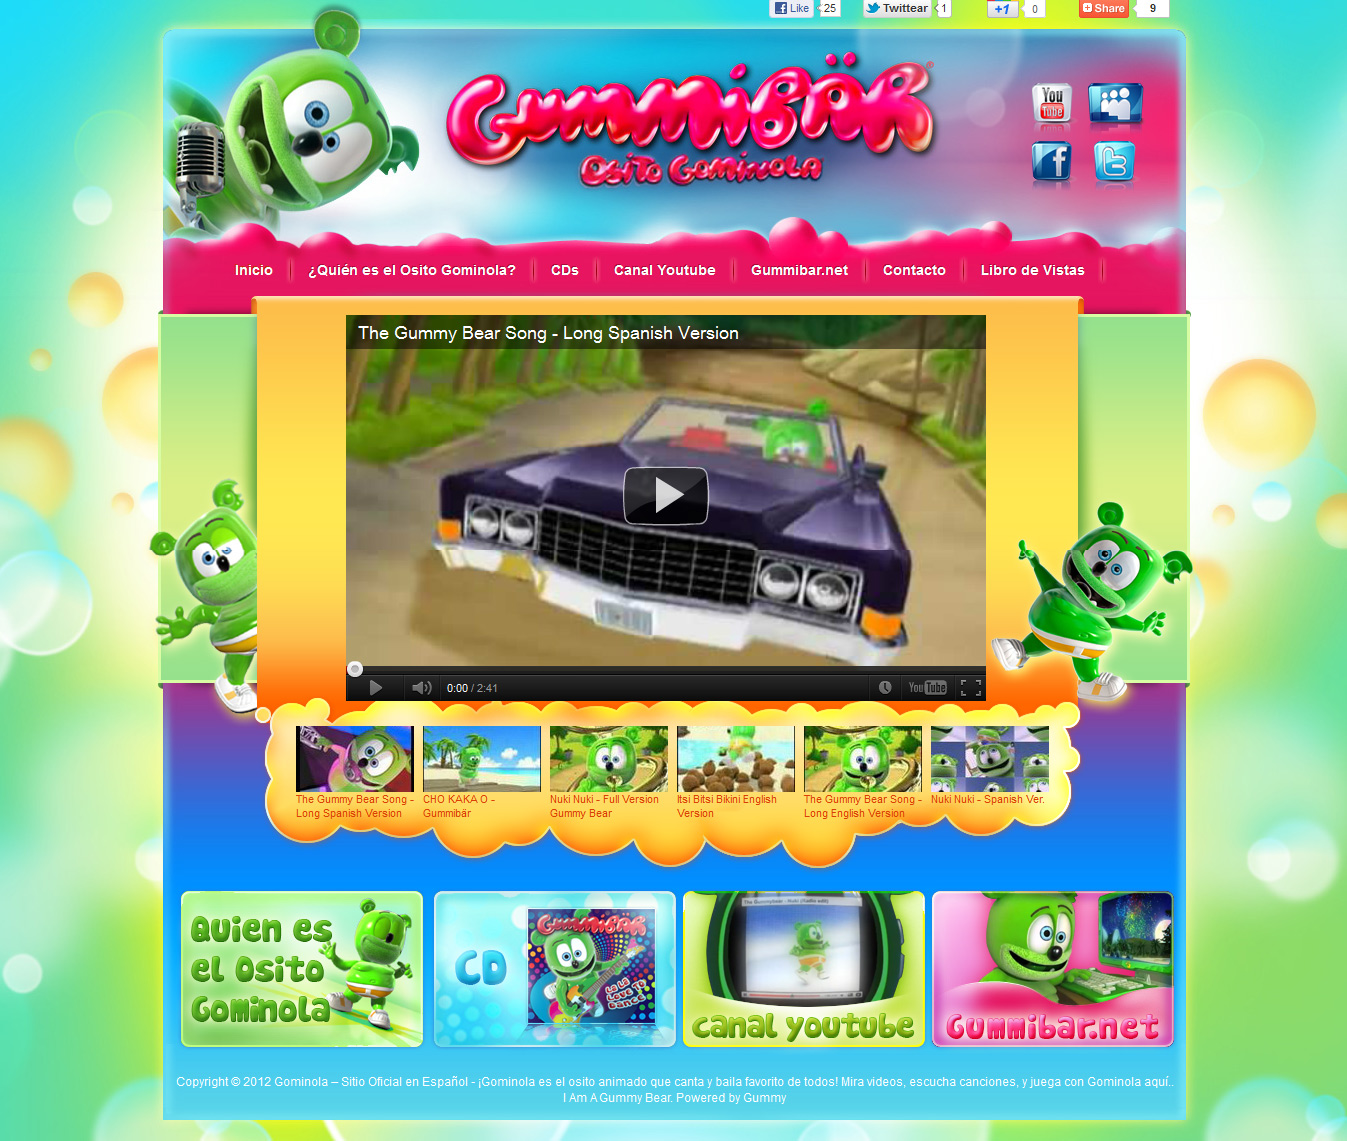 Gummybear International Launches New Spanish Language Website for Animated Gummy Bear Character Gummibär